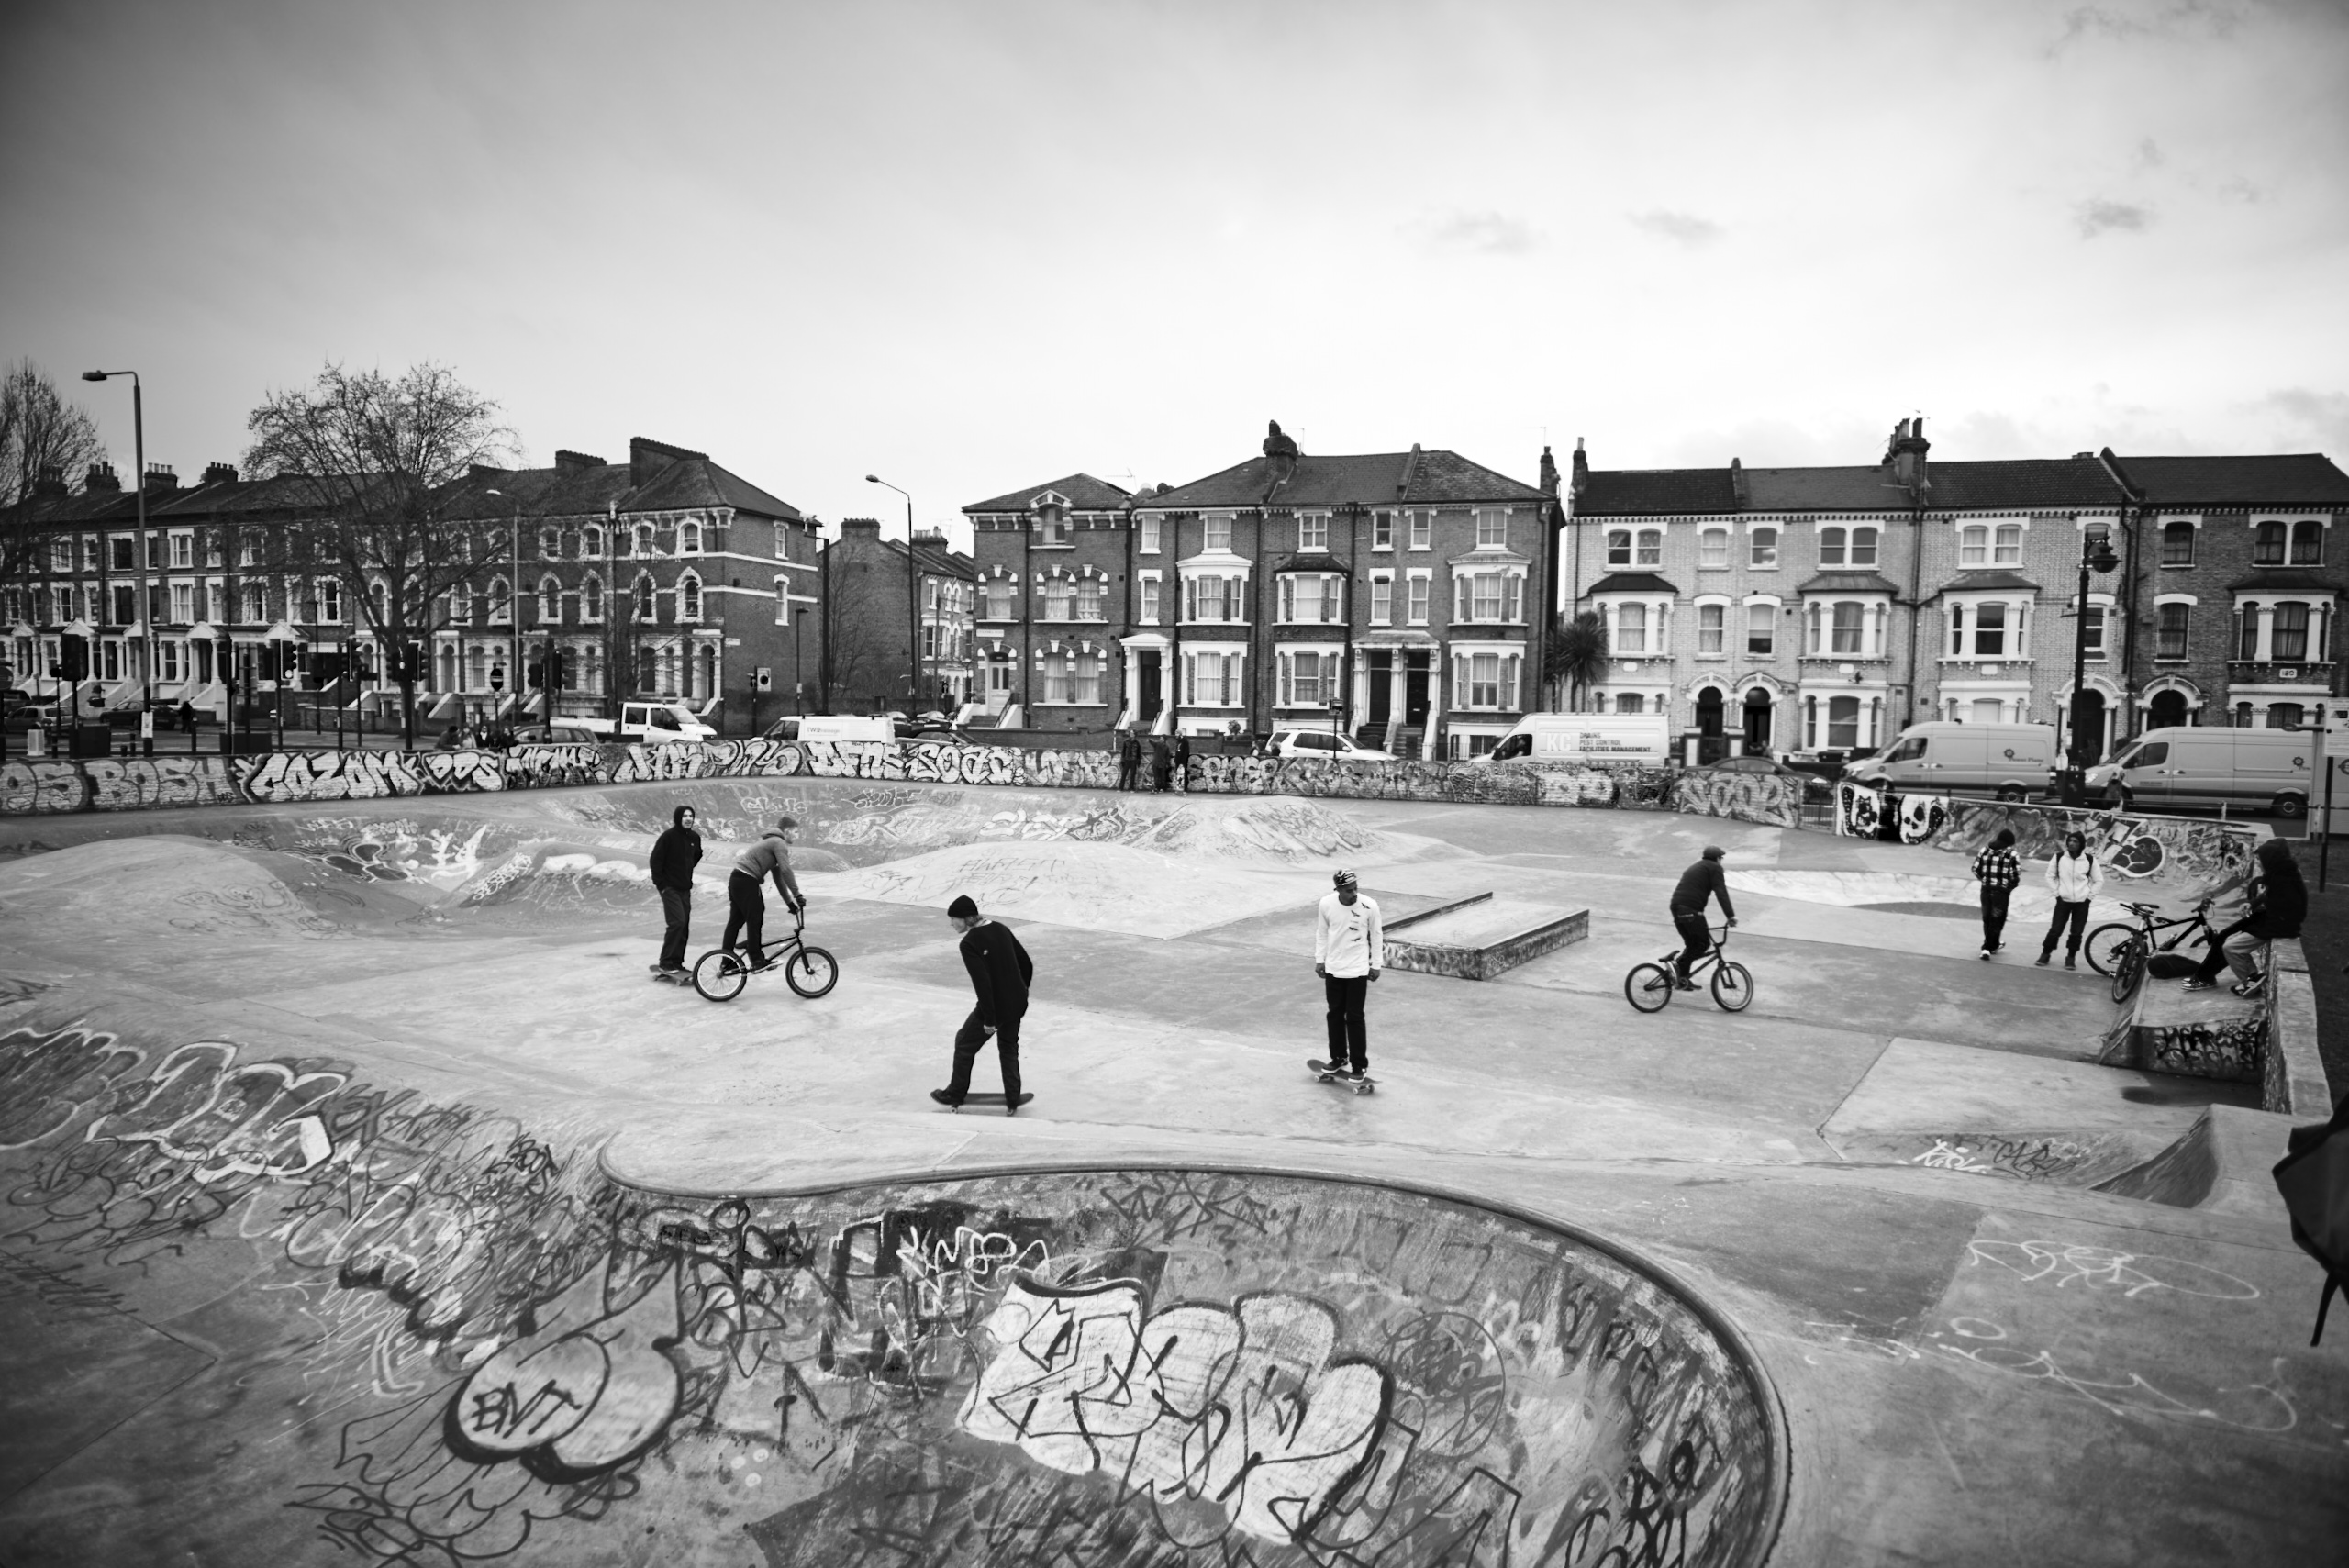 Brixton-skate-park-Matt-Stansfield-Lifestyle-Youth-Culture_18